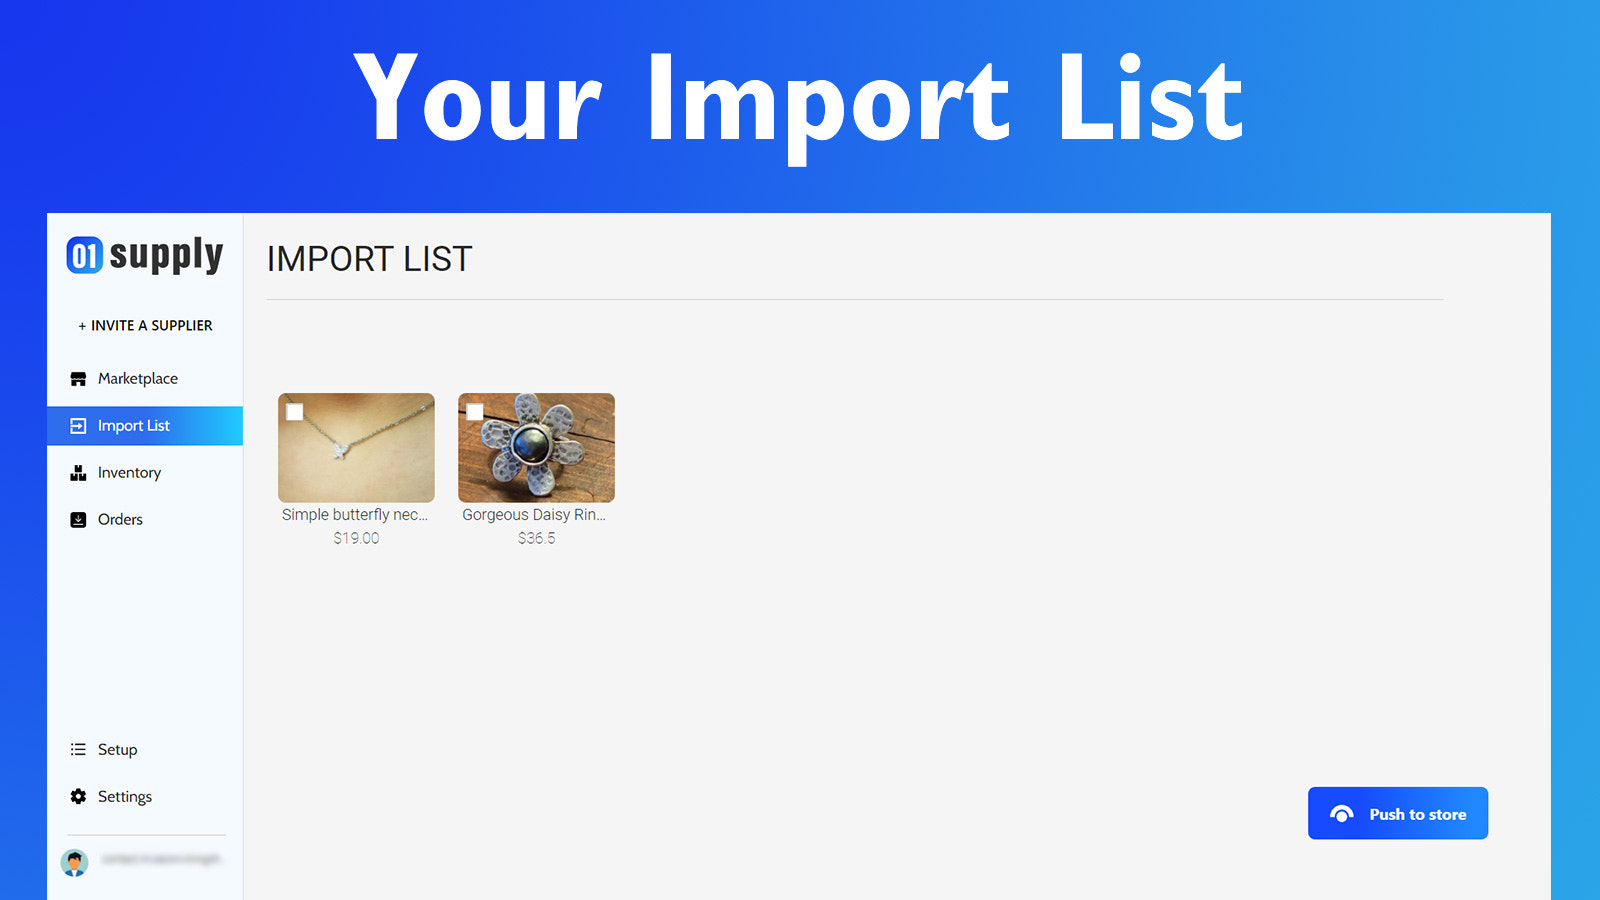 Your import list